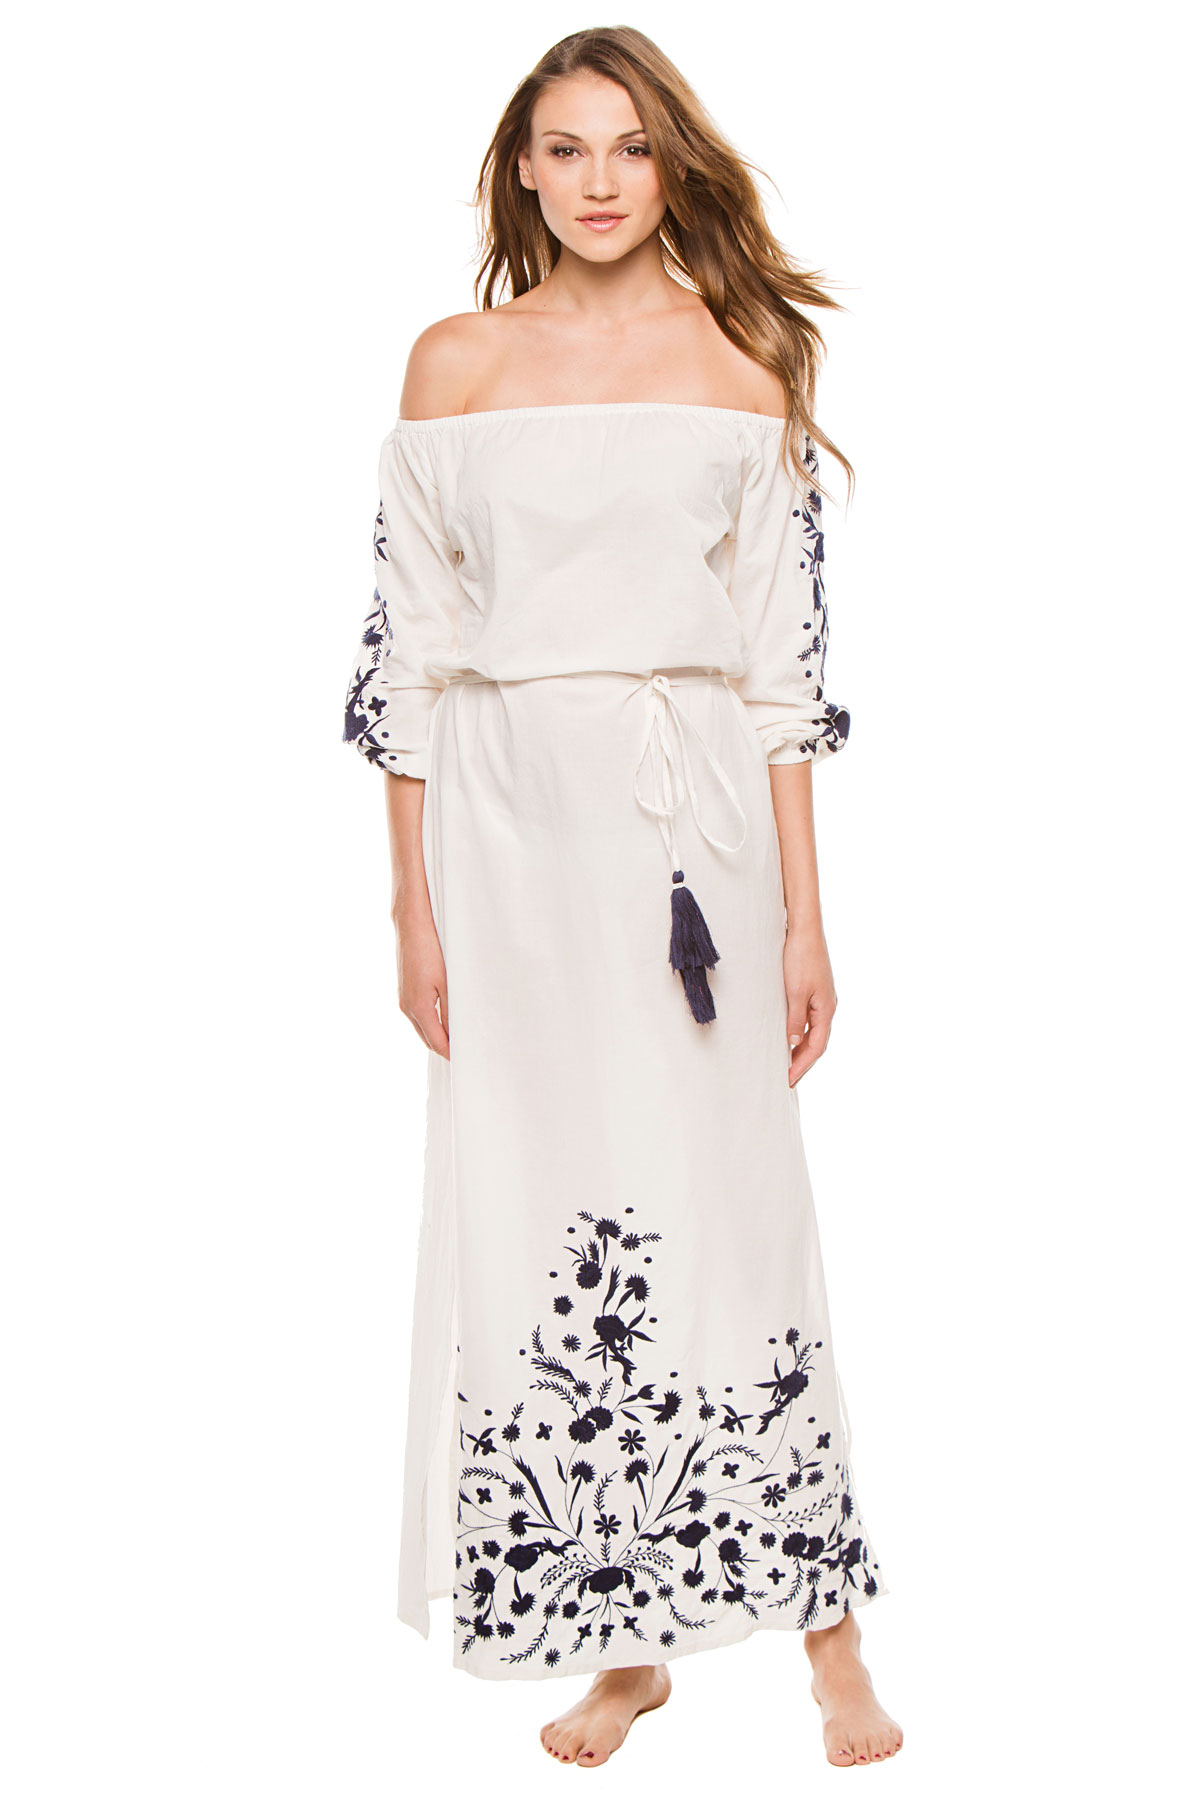 Grimaud Off The Shoulder Maxi Dress - White/Navy 1